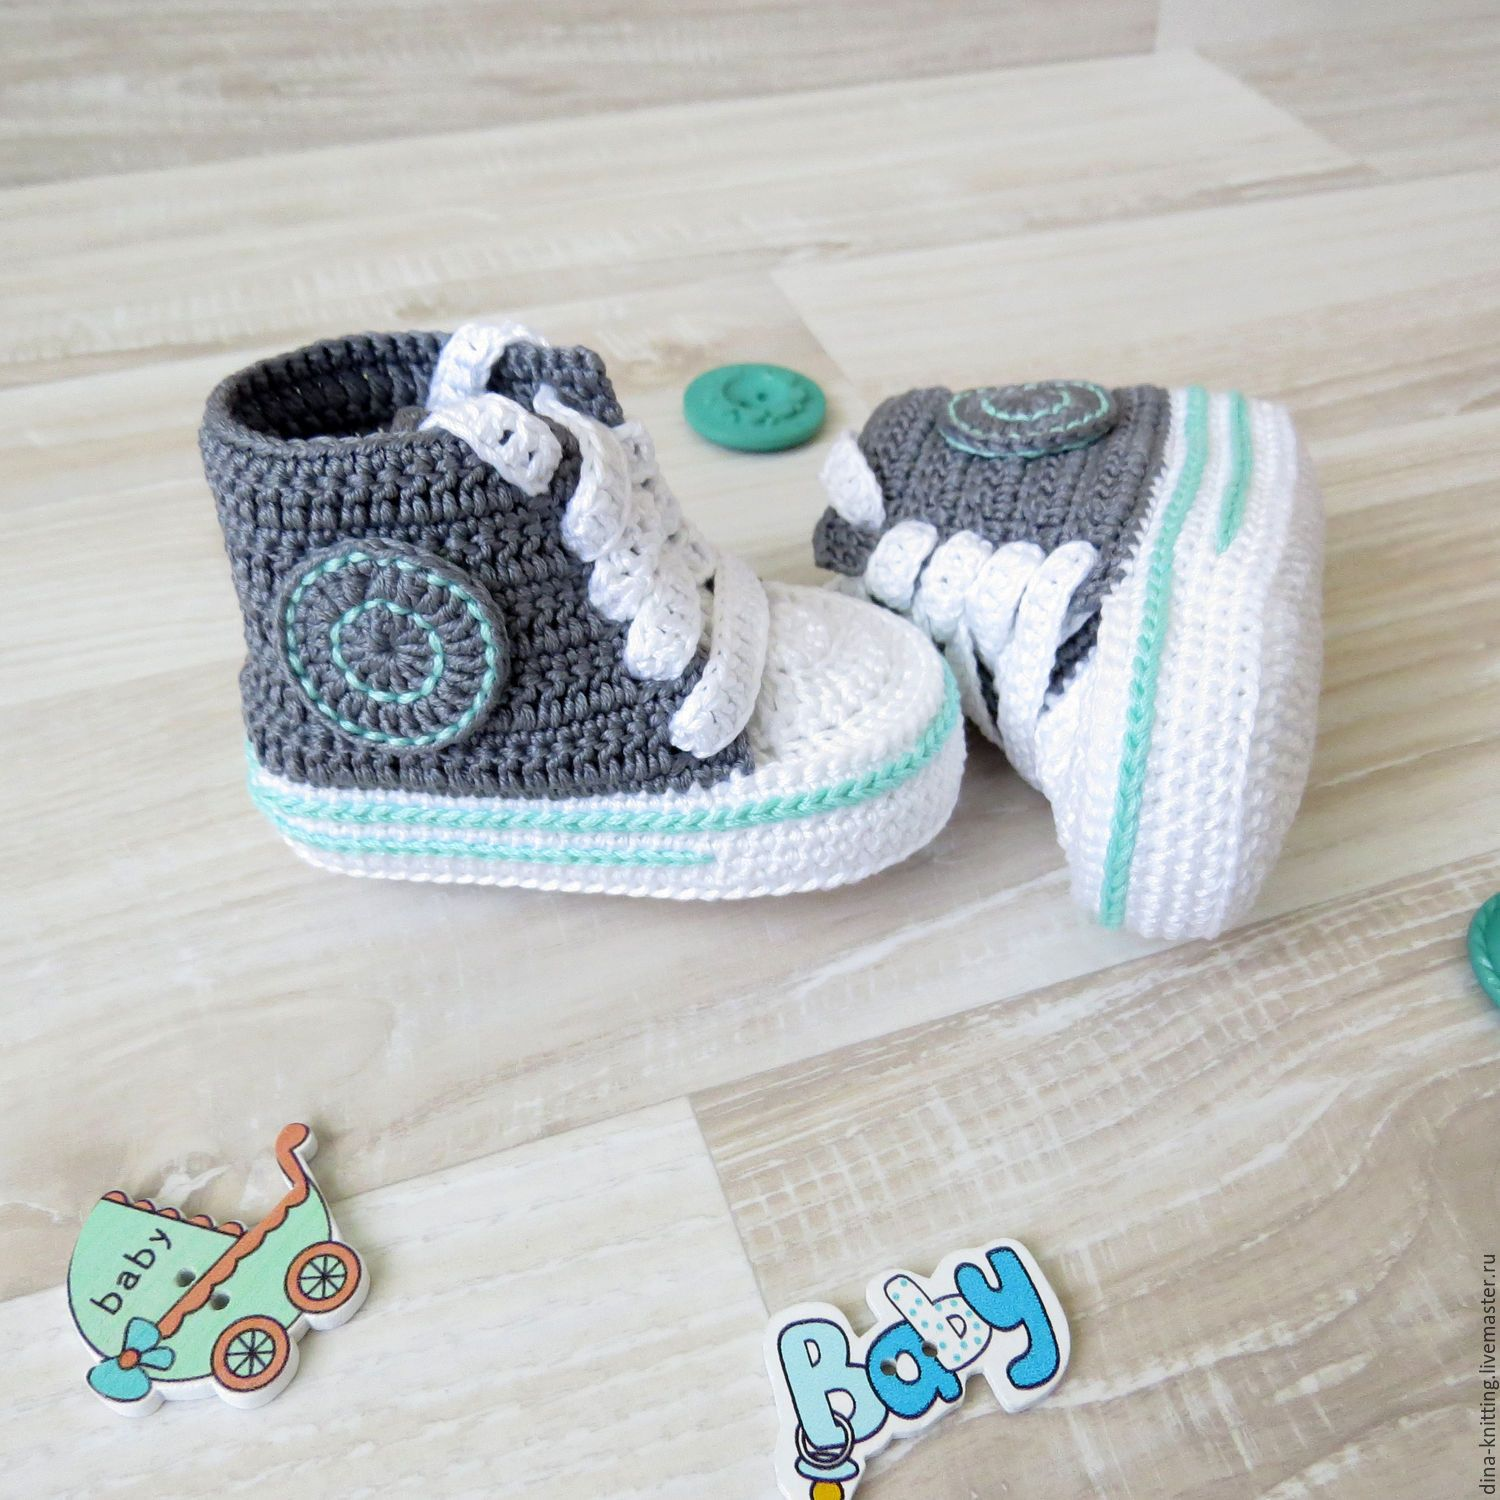 Pin by Yroslava on Обувь | Pinterest | Baby booties, Crochet baby ...